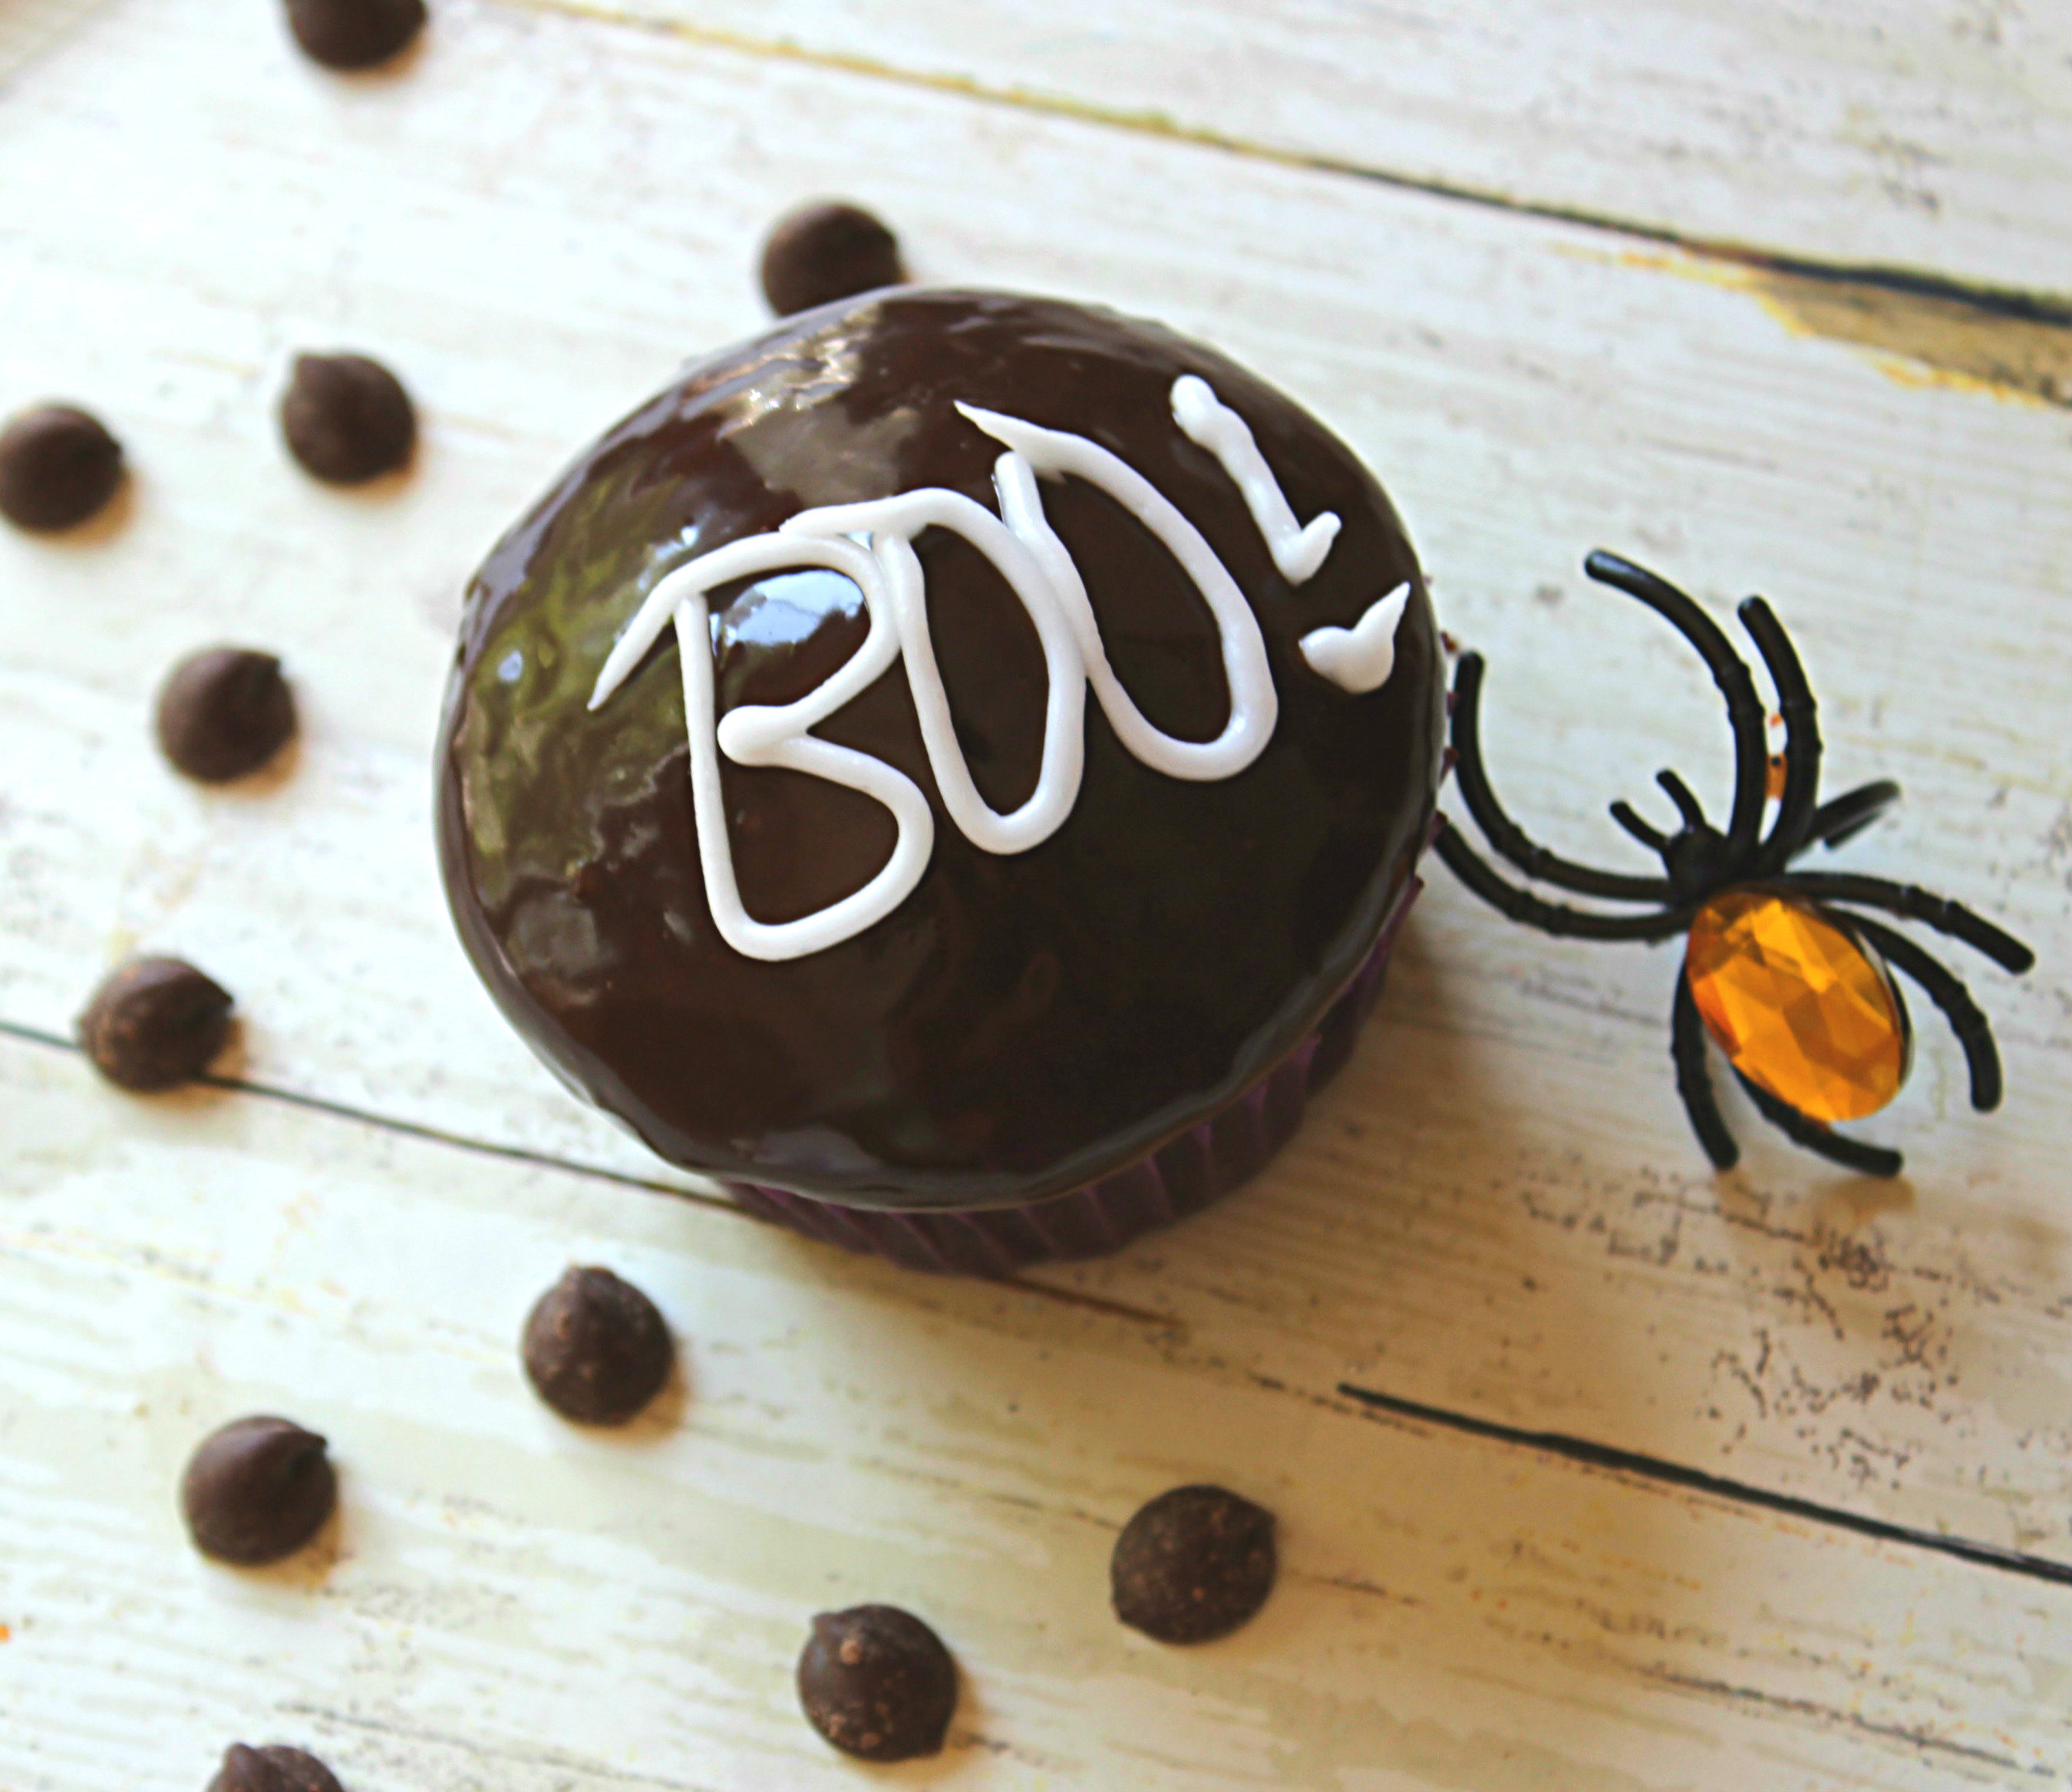 BOO chocolate ganache glazed halloween pumpkins